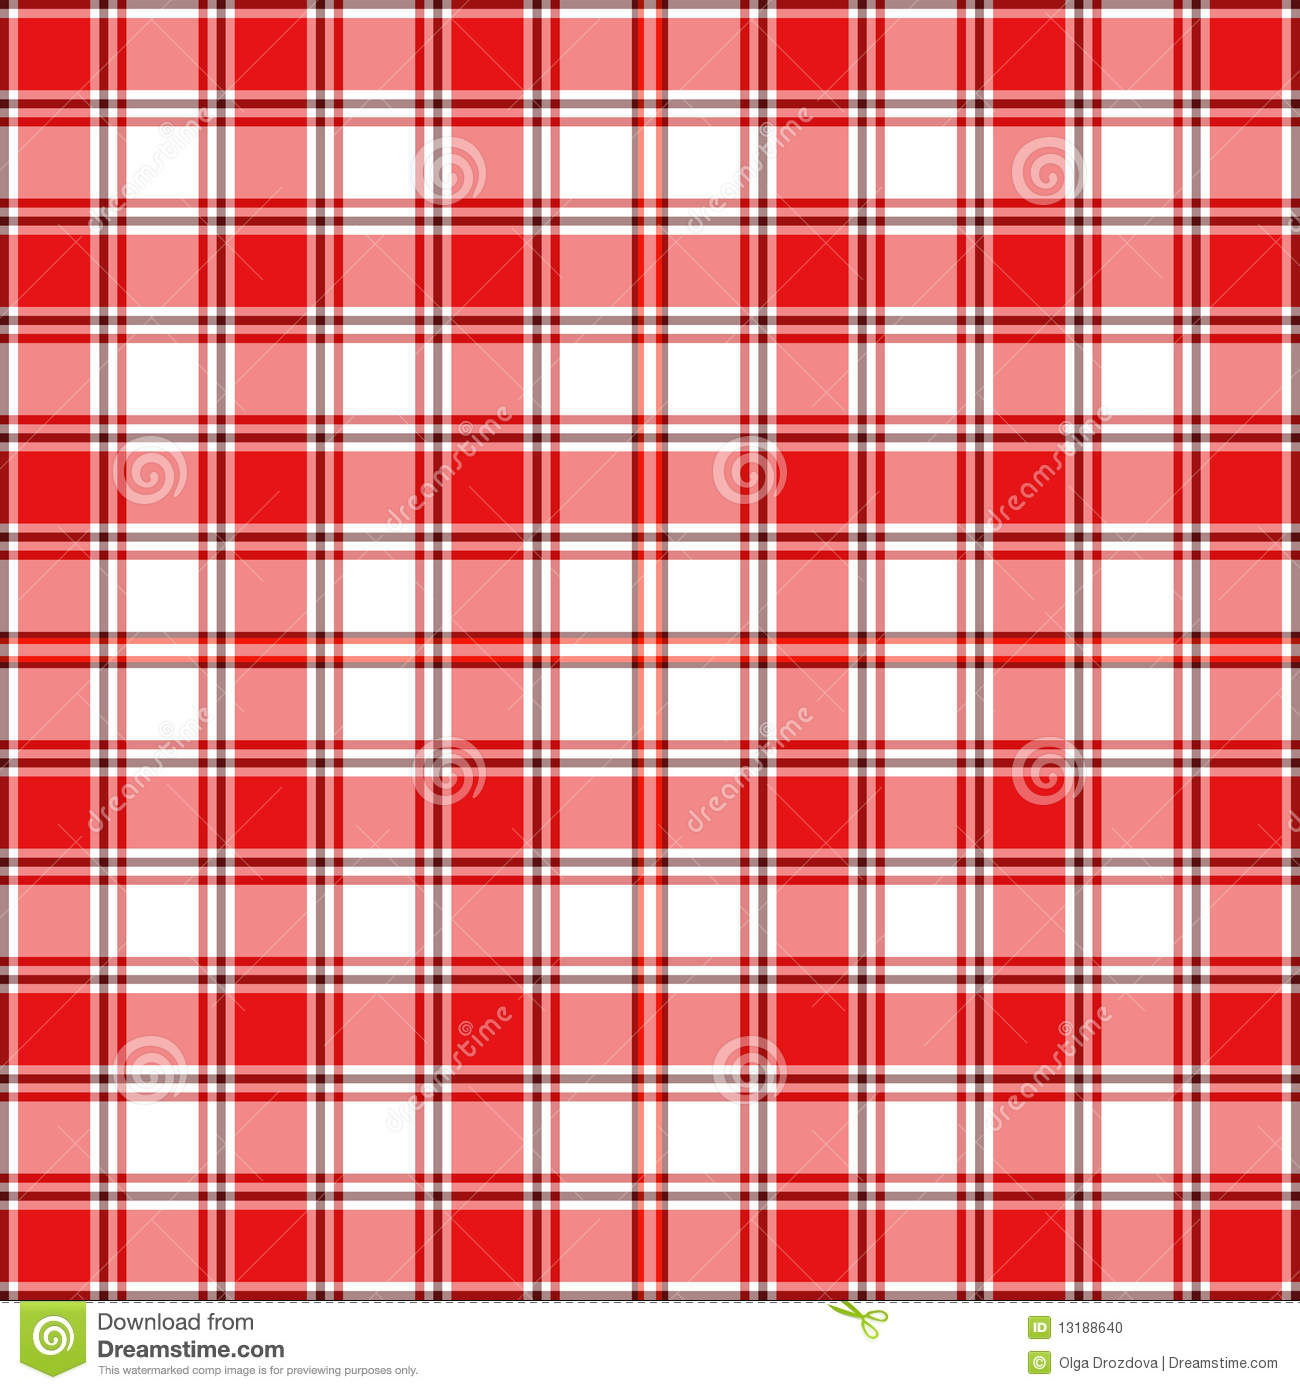 Seamless checkered pattern stock vector. Illustration of abstract - 13188640